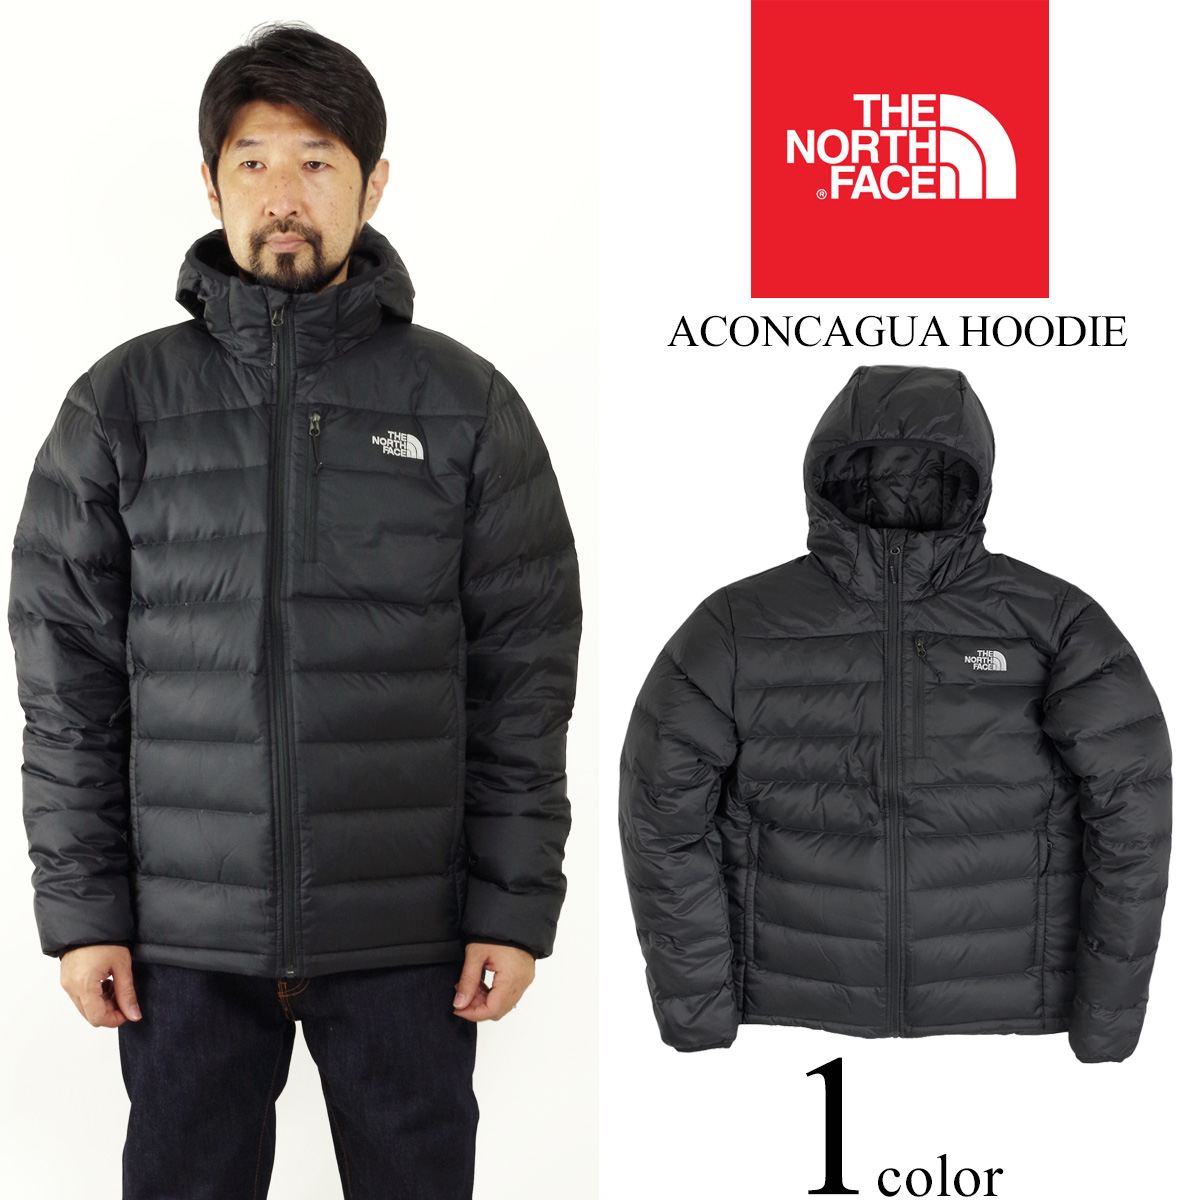 cb8e32e3170a Jalana  North Face THE NORTH FACE アコンカグアフーディー (non-release ACONCAGUA HOODIE  down jacket cold protection in Japan)